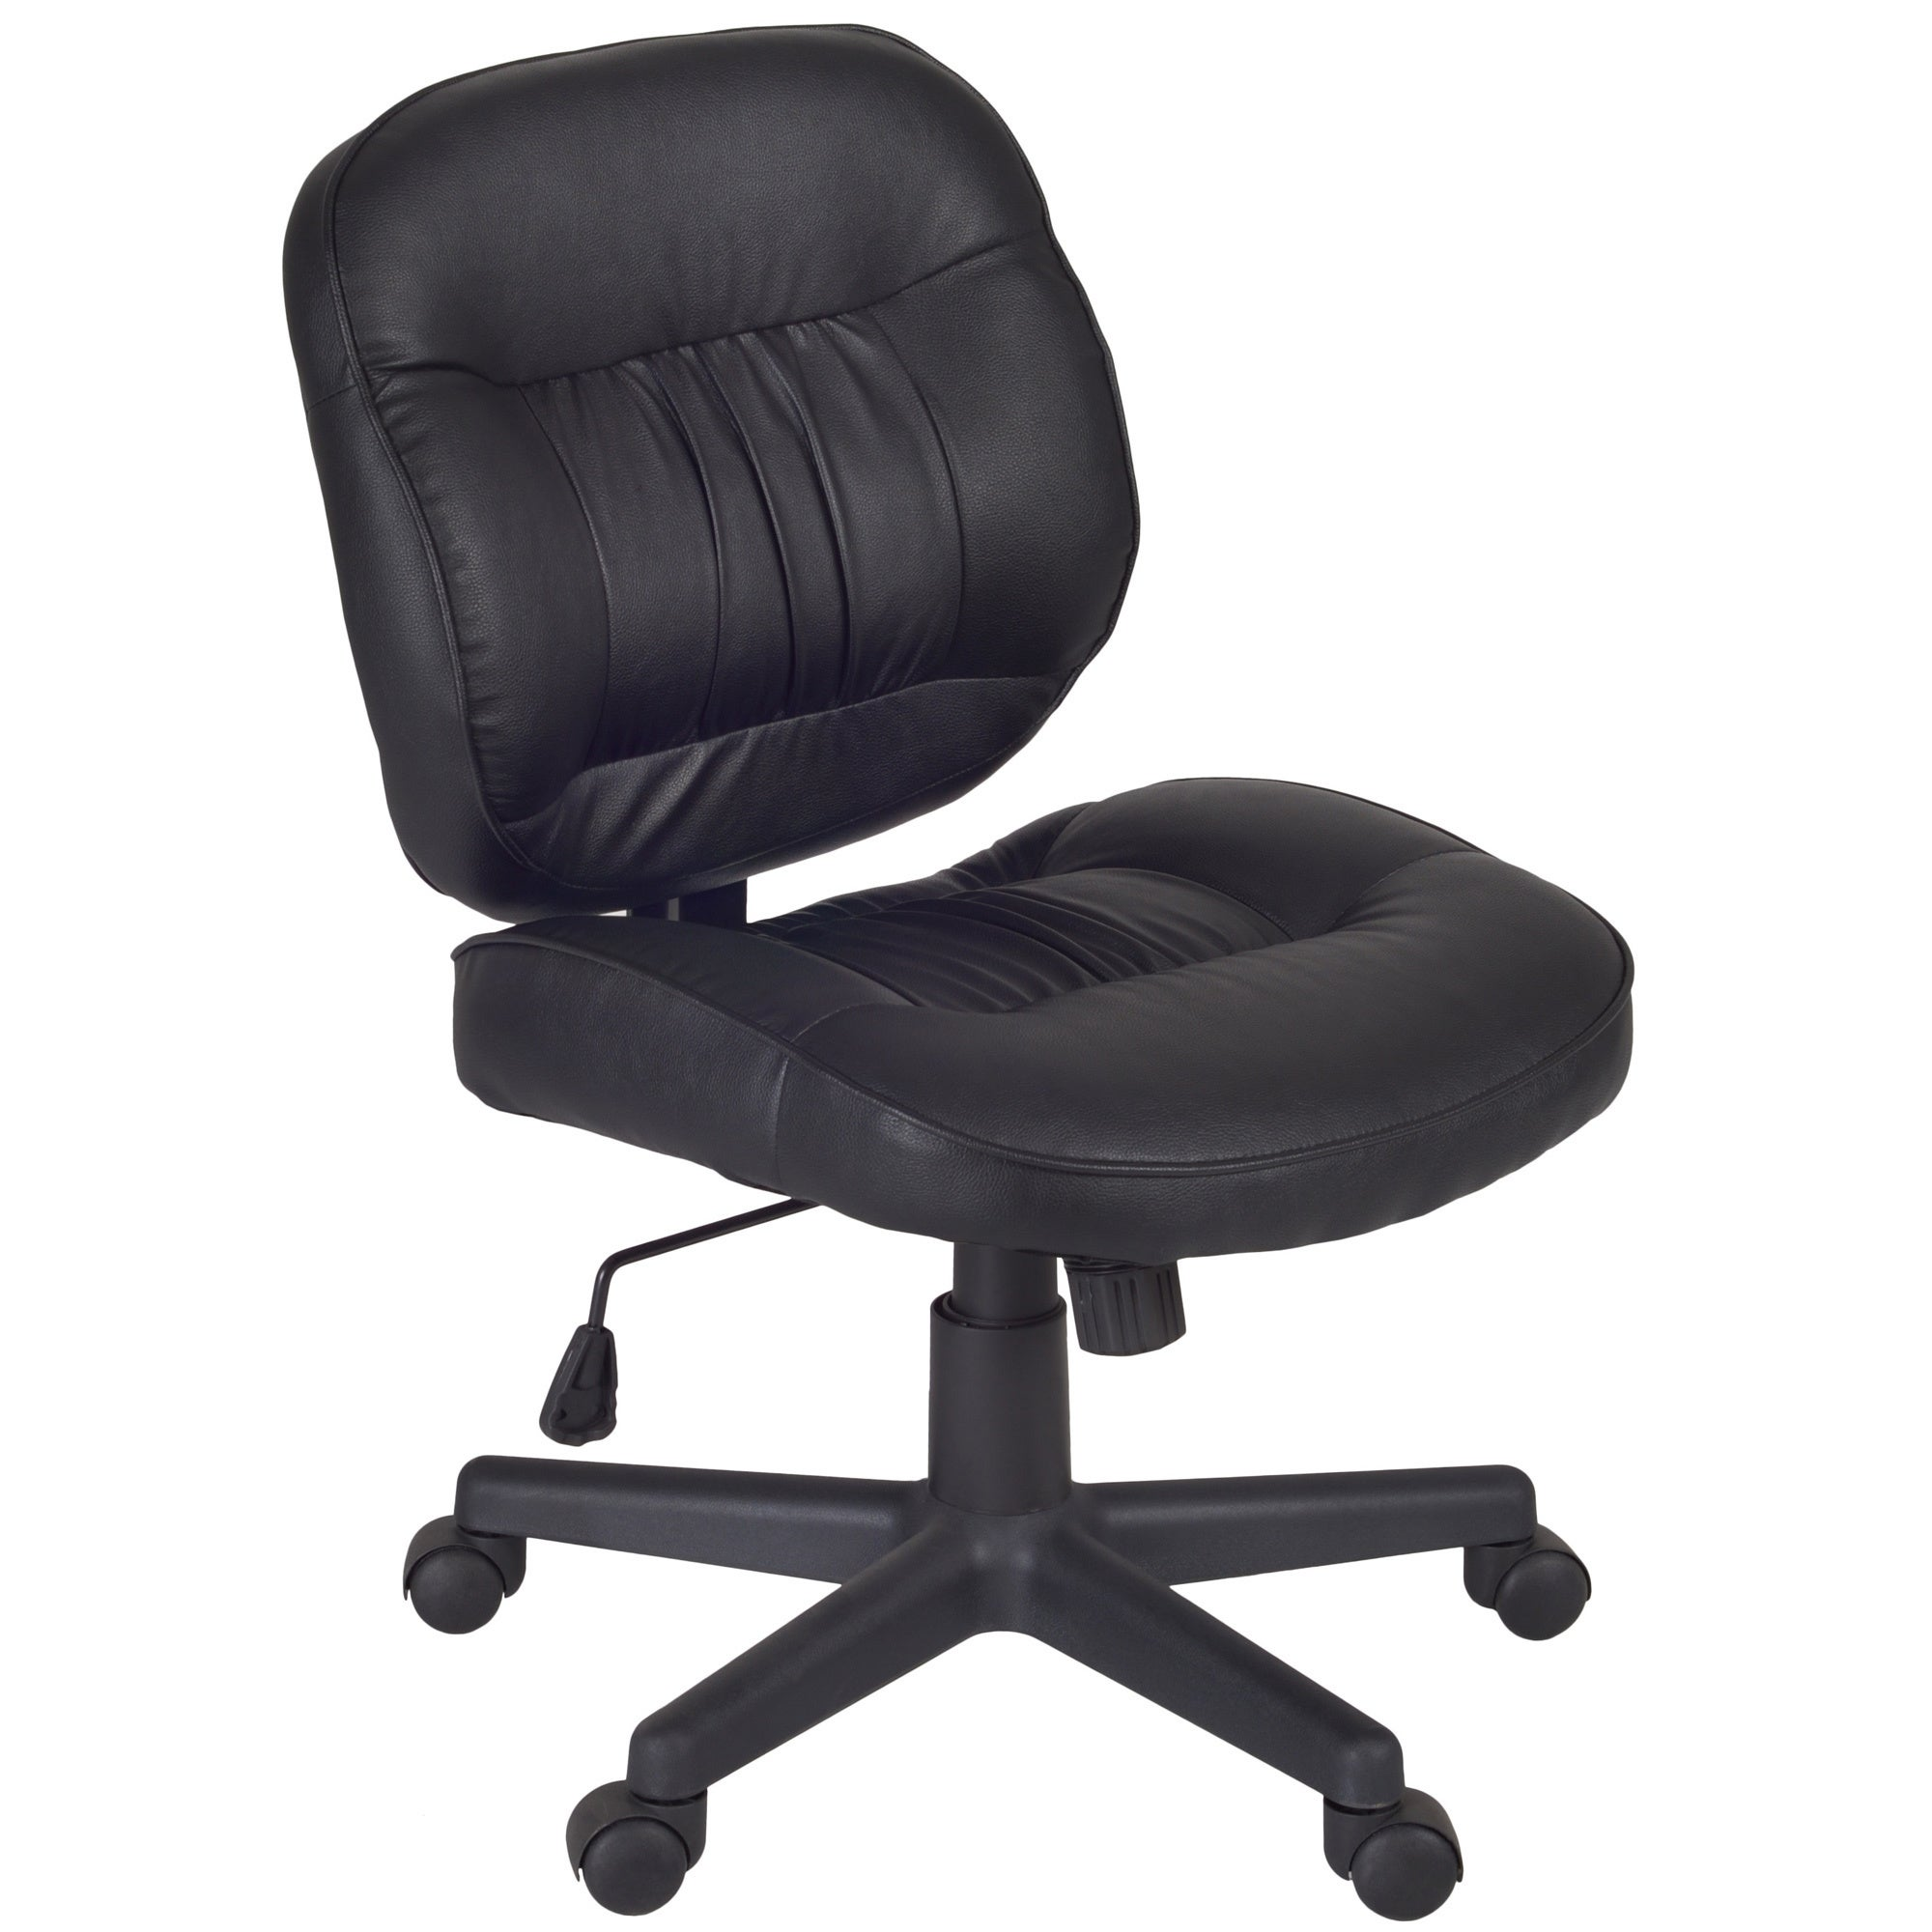 Cirrus Swivel Office Chair Overstock Shopping The Best Prices On